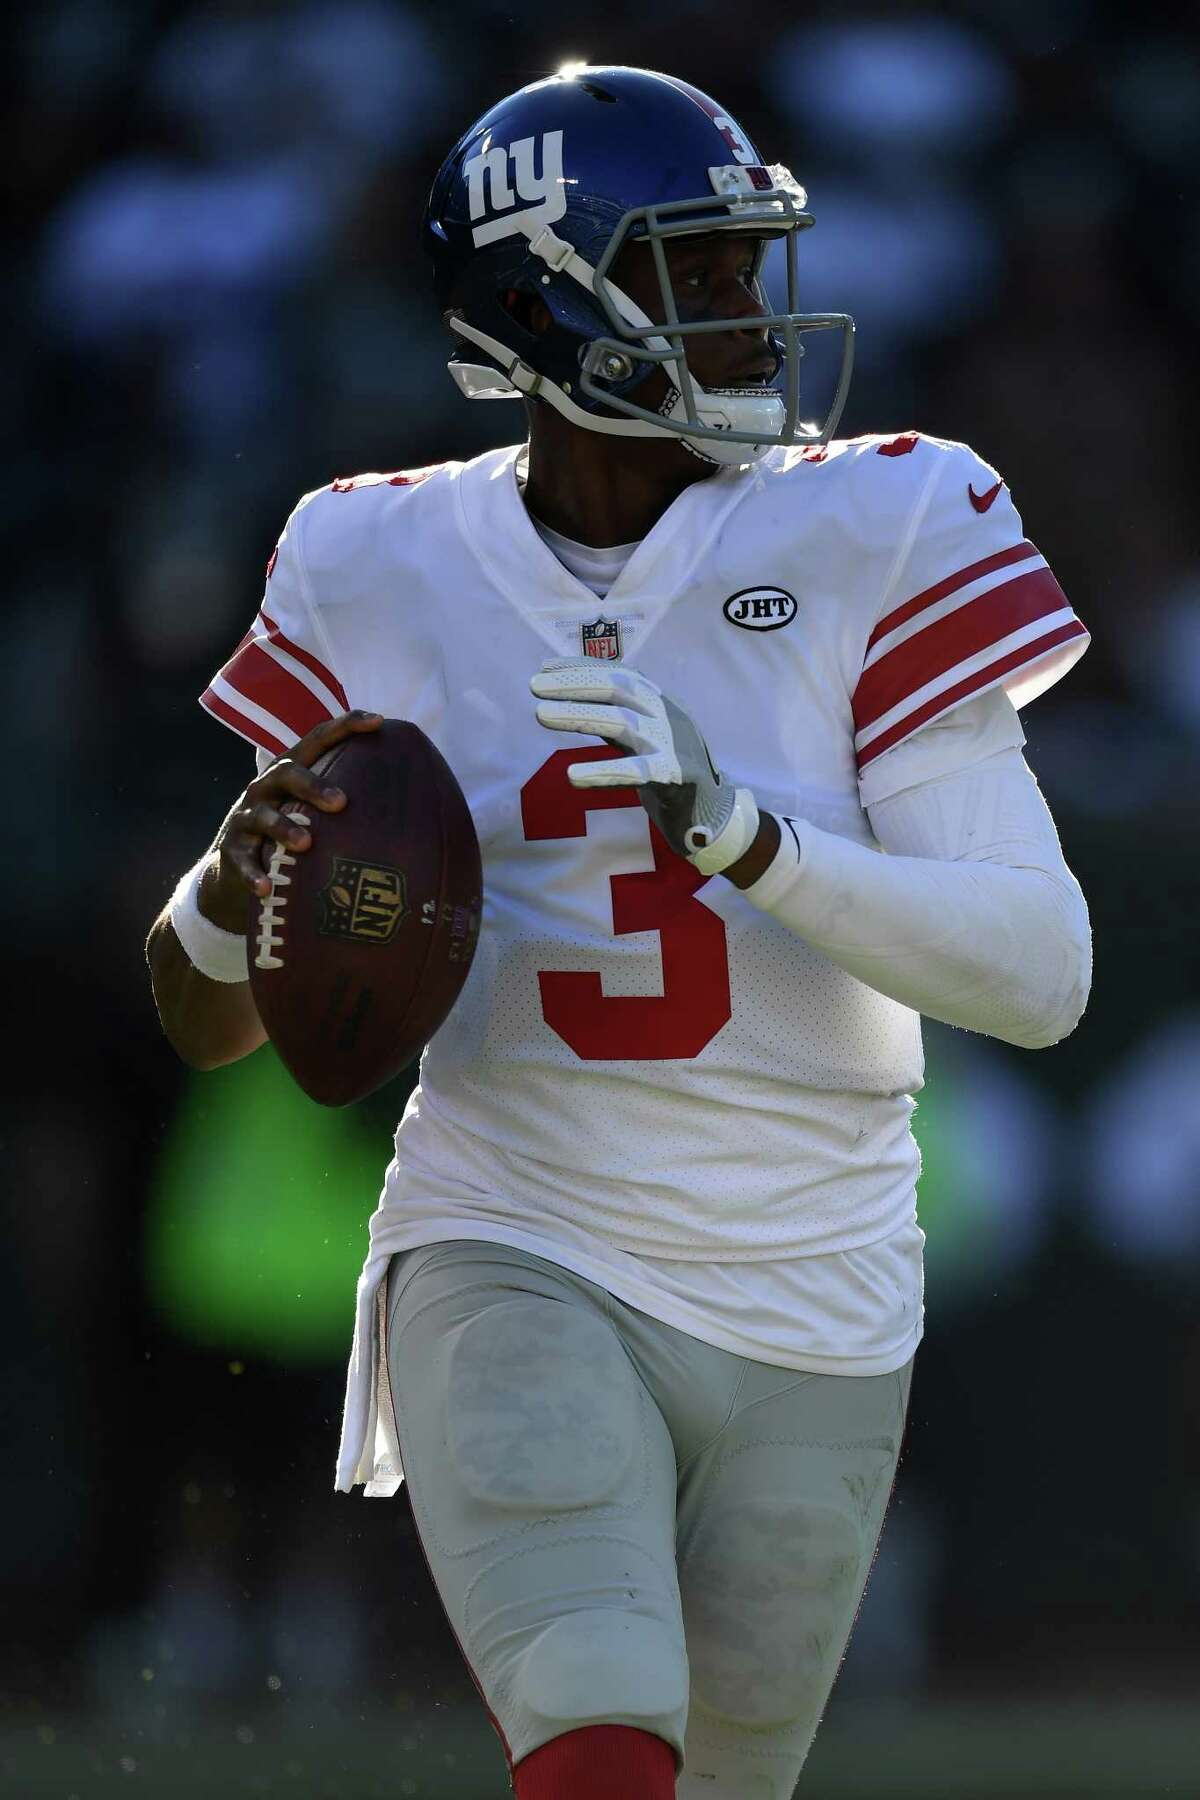 OAKLAND, CA - DECEMBER 03: Geno Smith #3 of the New York Giants looks to pass against the Oakland Raiders during their NFL game at Oakland-Alameda County Coliseum on December 3, 2017 in Oakland, California. (Photo by Thearon W. Henderson/Getty Images) ORG XMIT: 700070785